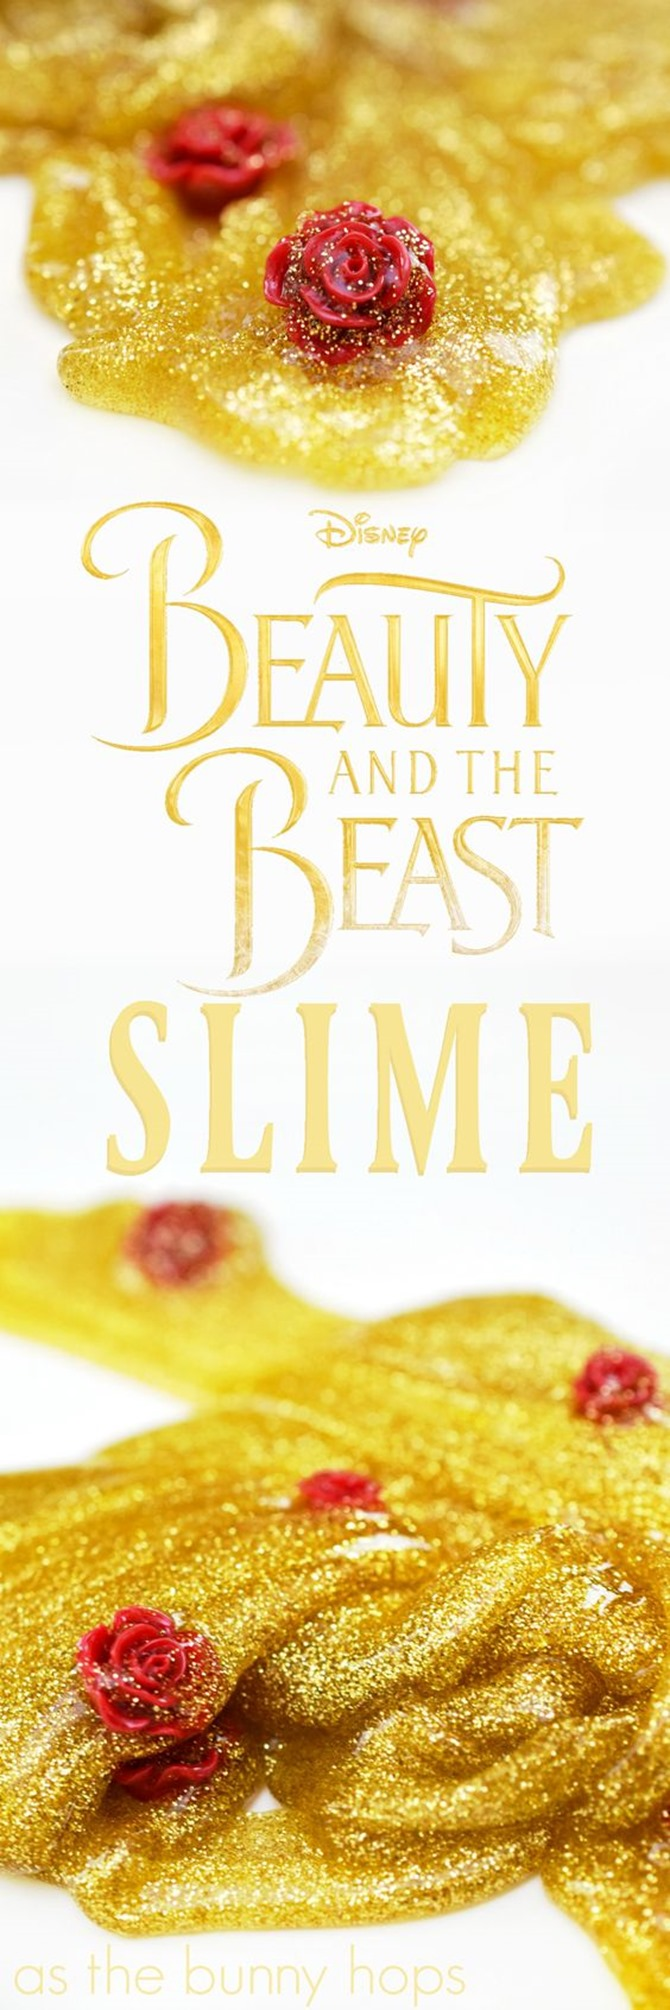 12 DIY Slime Recipes - Beauty and the Beast - Super Cute